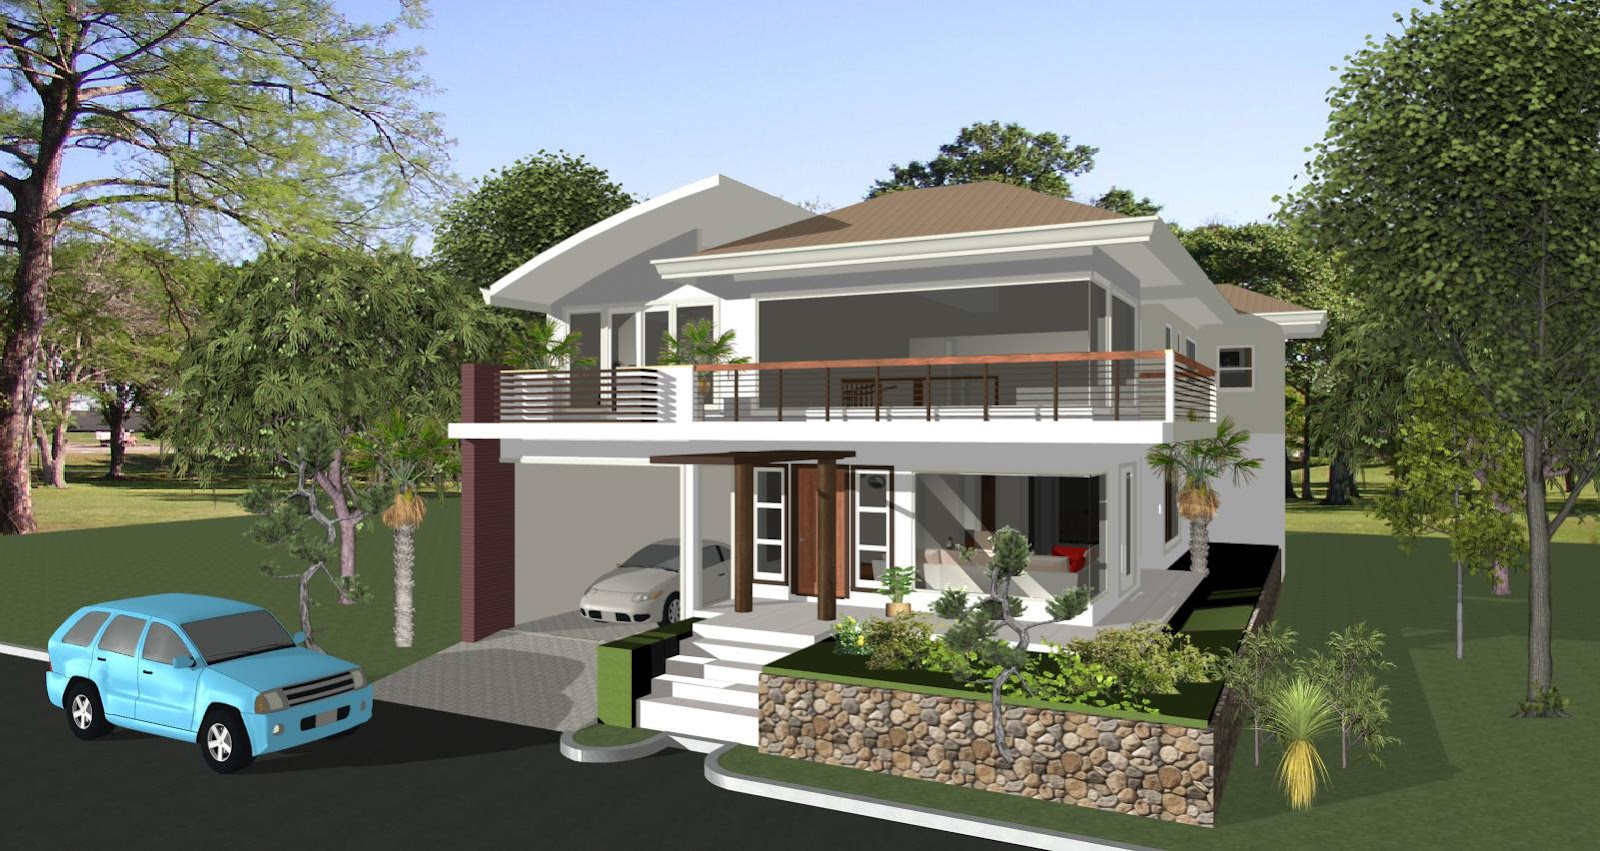 House designs philippines architect bill house plans for House color design exterior philippines